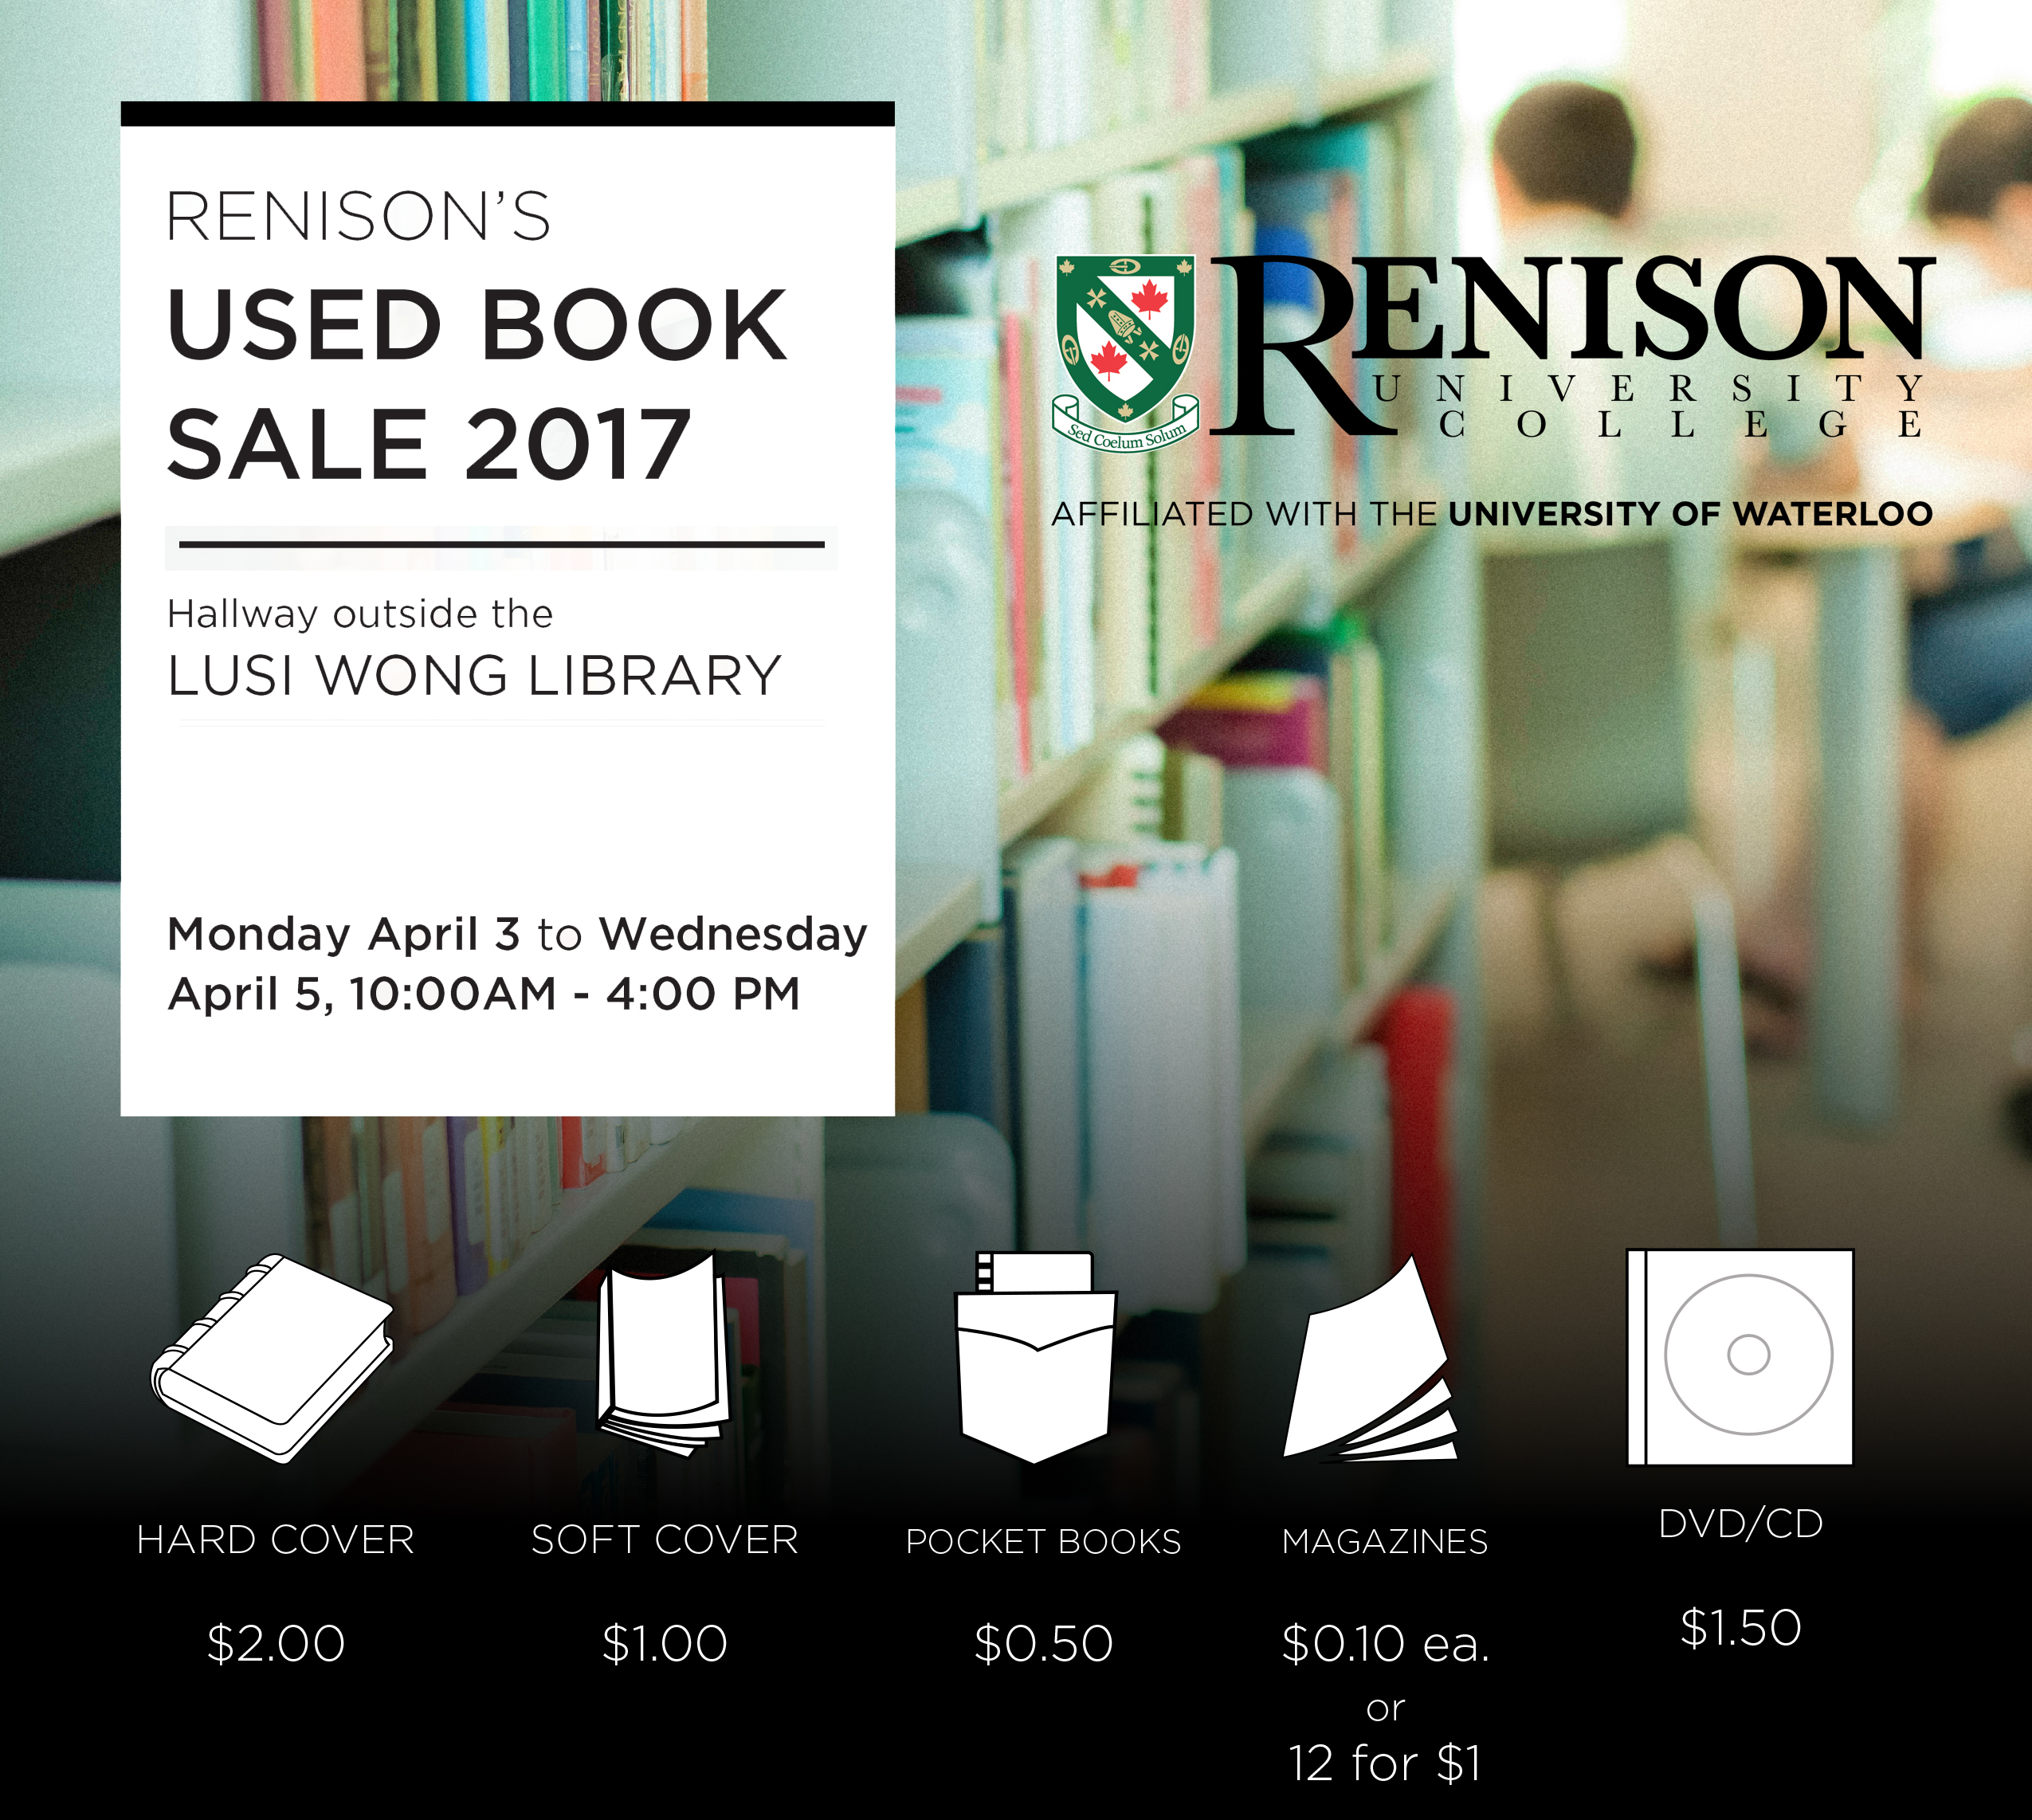 Renison's Used book sale 2017: April 3rd to April 5th, 10:00 AM to 4:00 PM each day